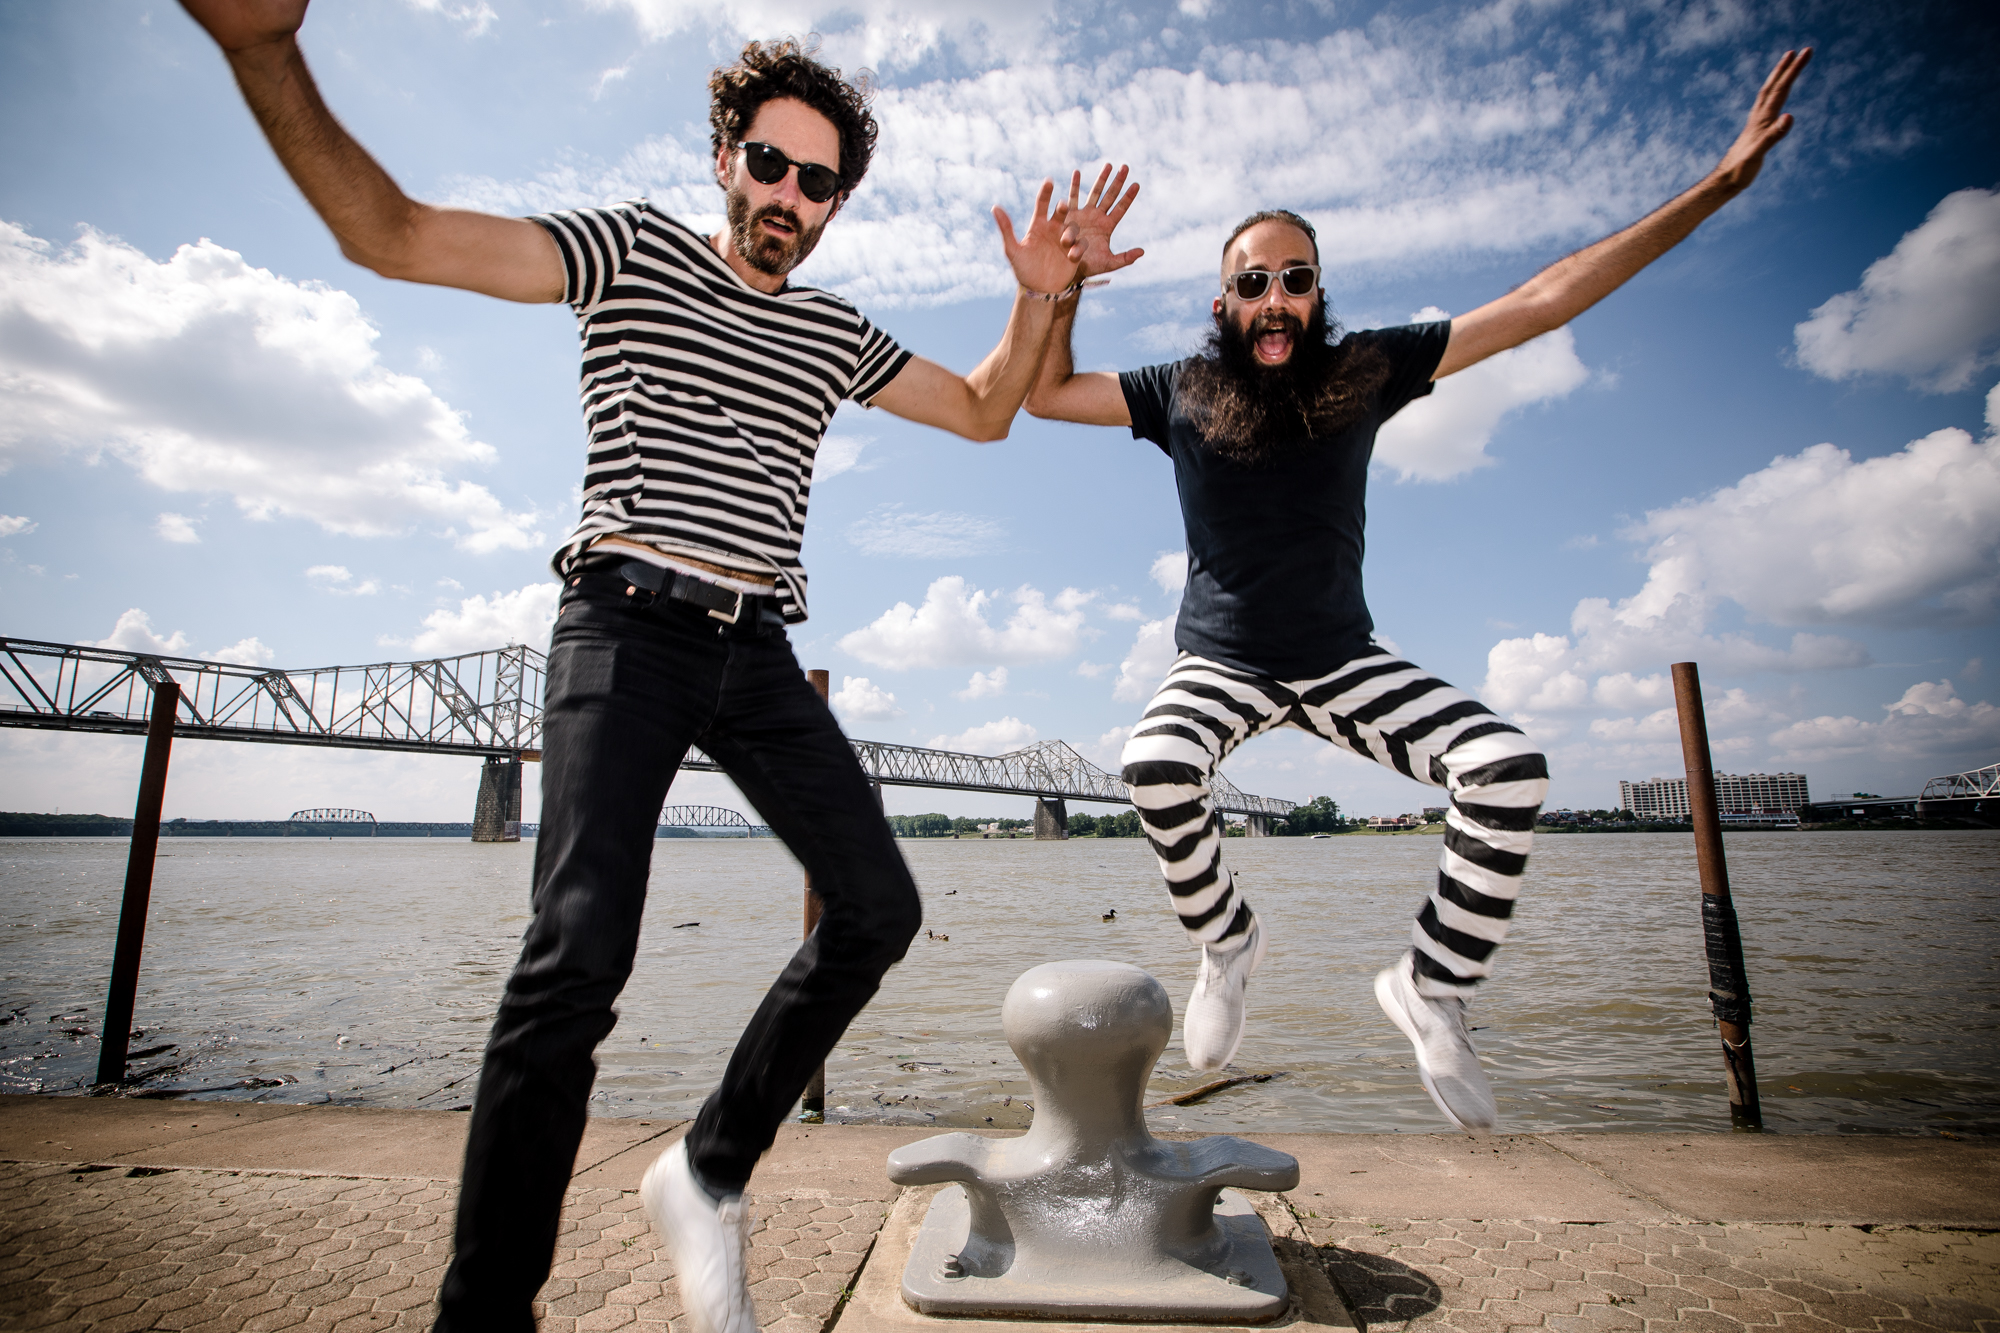 CapitalCities_ForecastleFestival_Day_1_CortneyArmitage1S2A8432.jpg